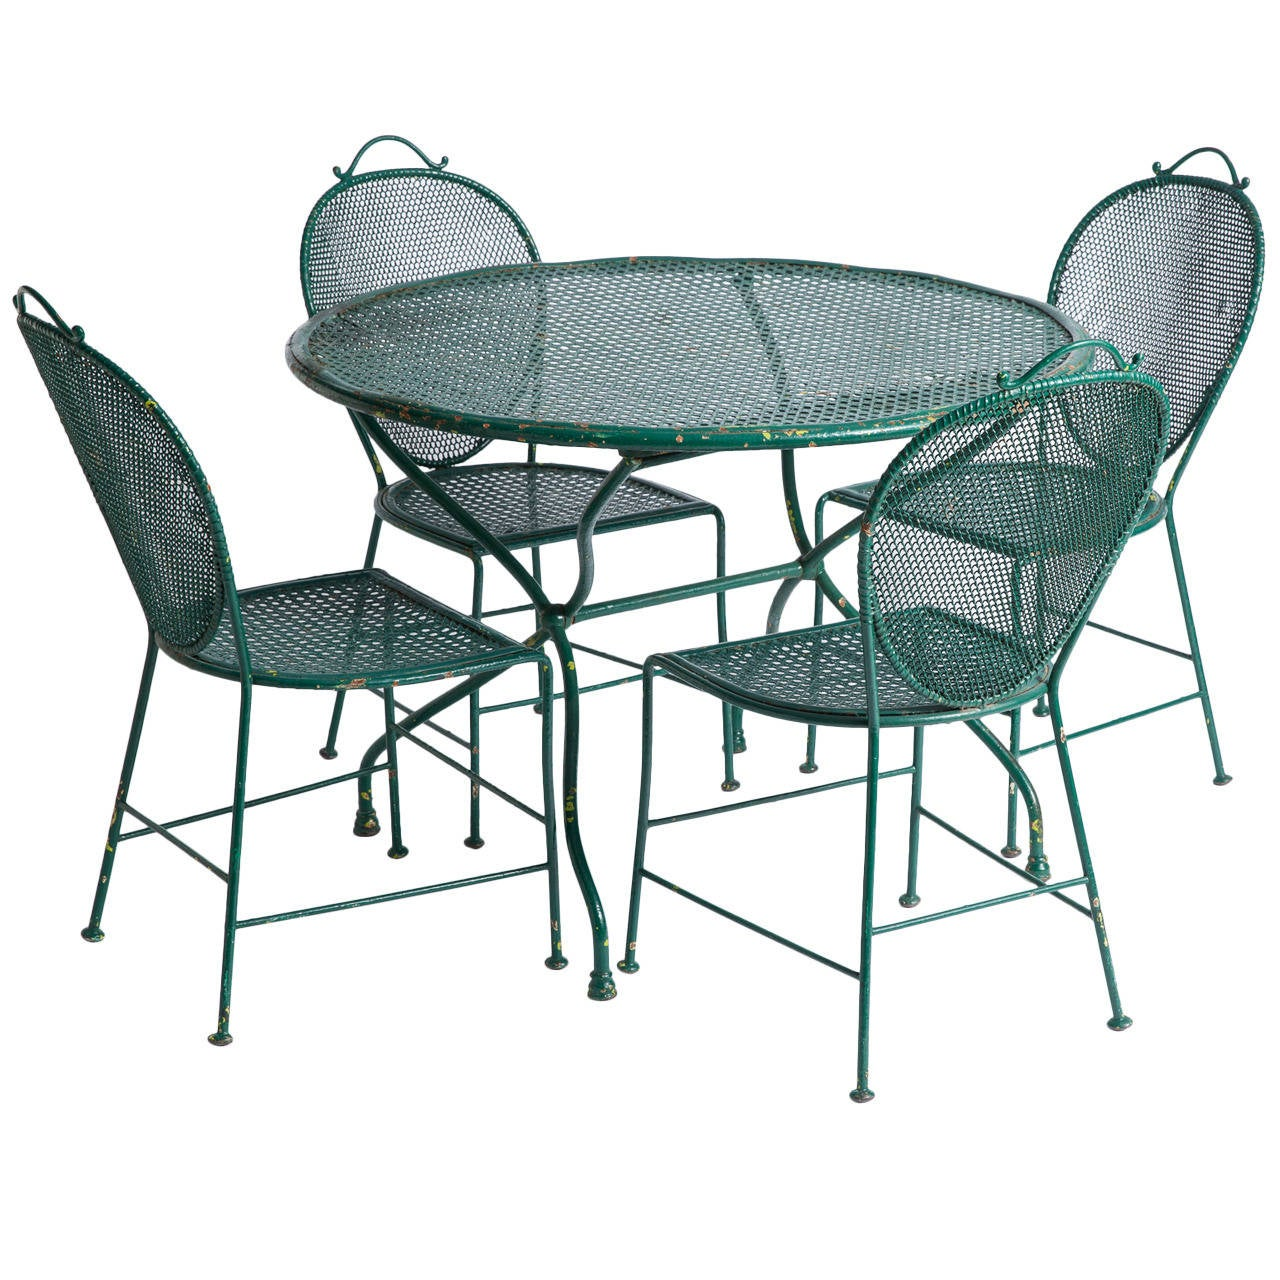 French Wrought Iron Garden Table And Chairs Circa 1900 At